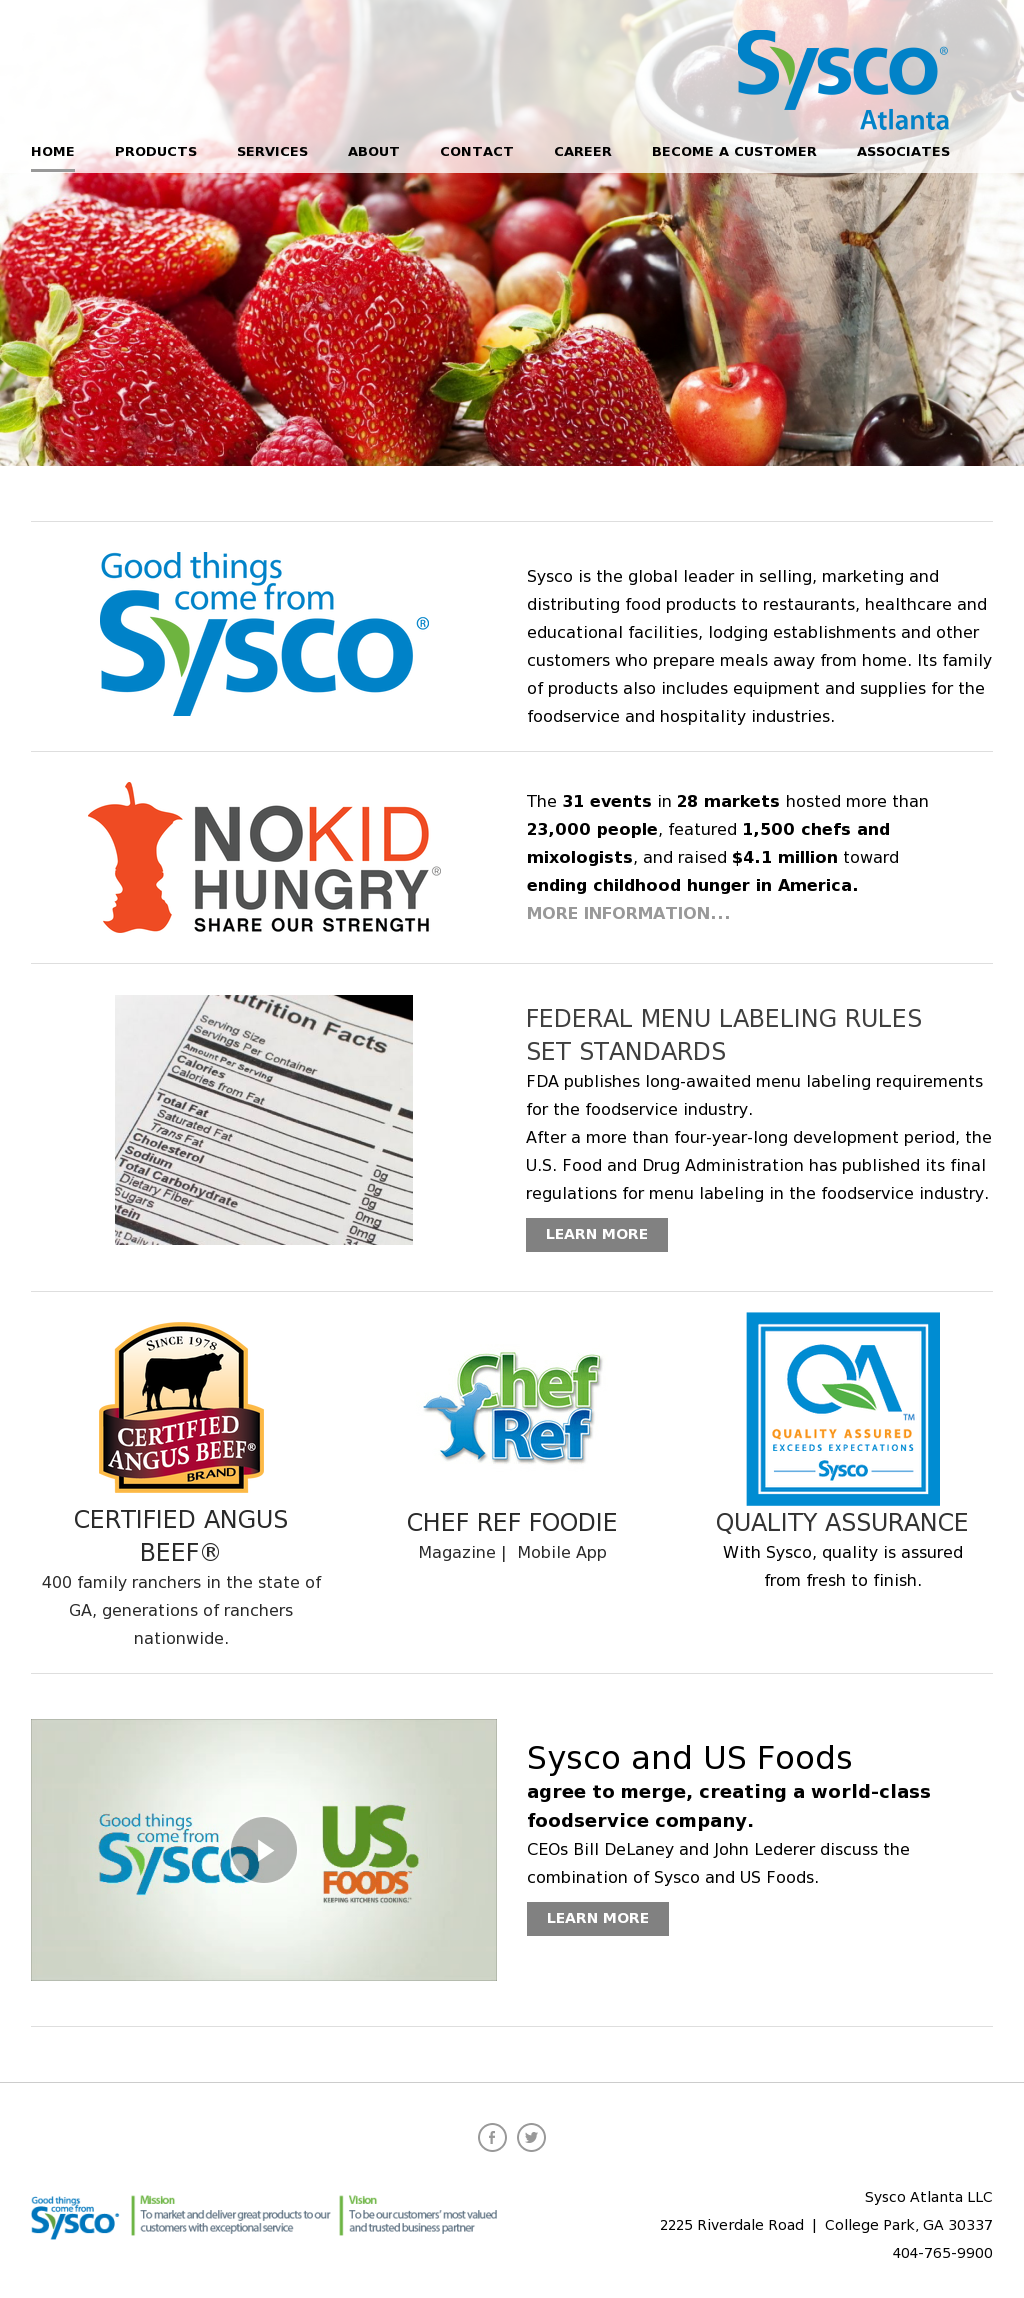 Sysco food services of atlanta - 1 dollar clothing store online